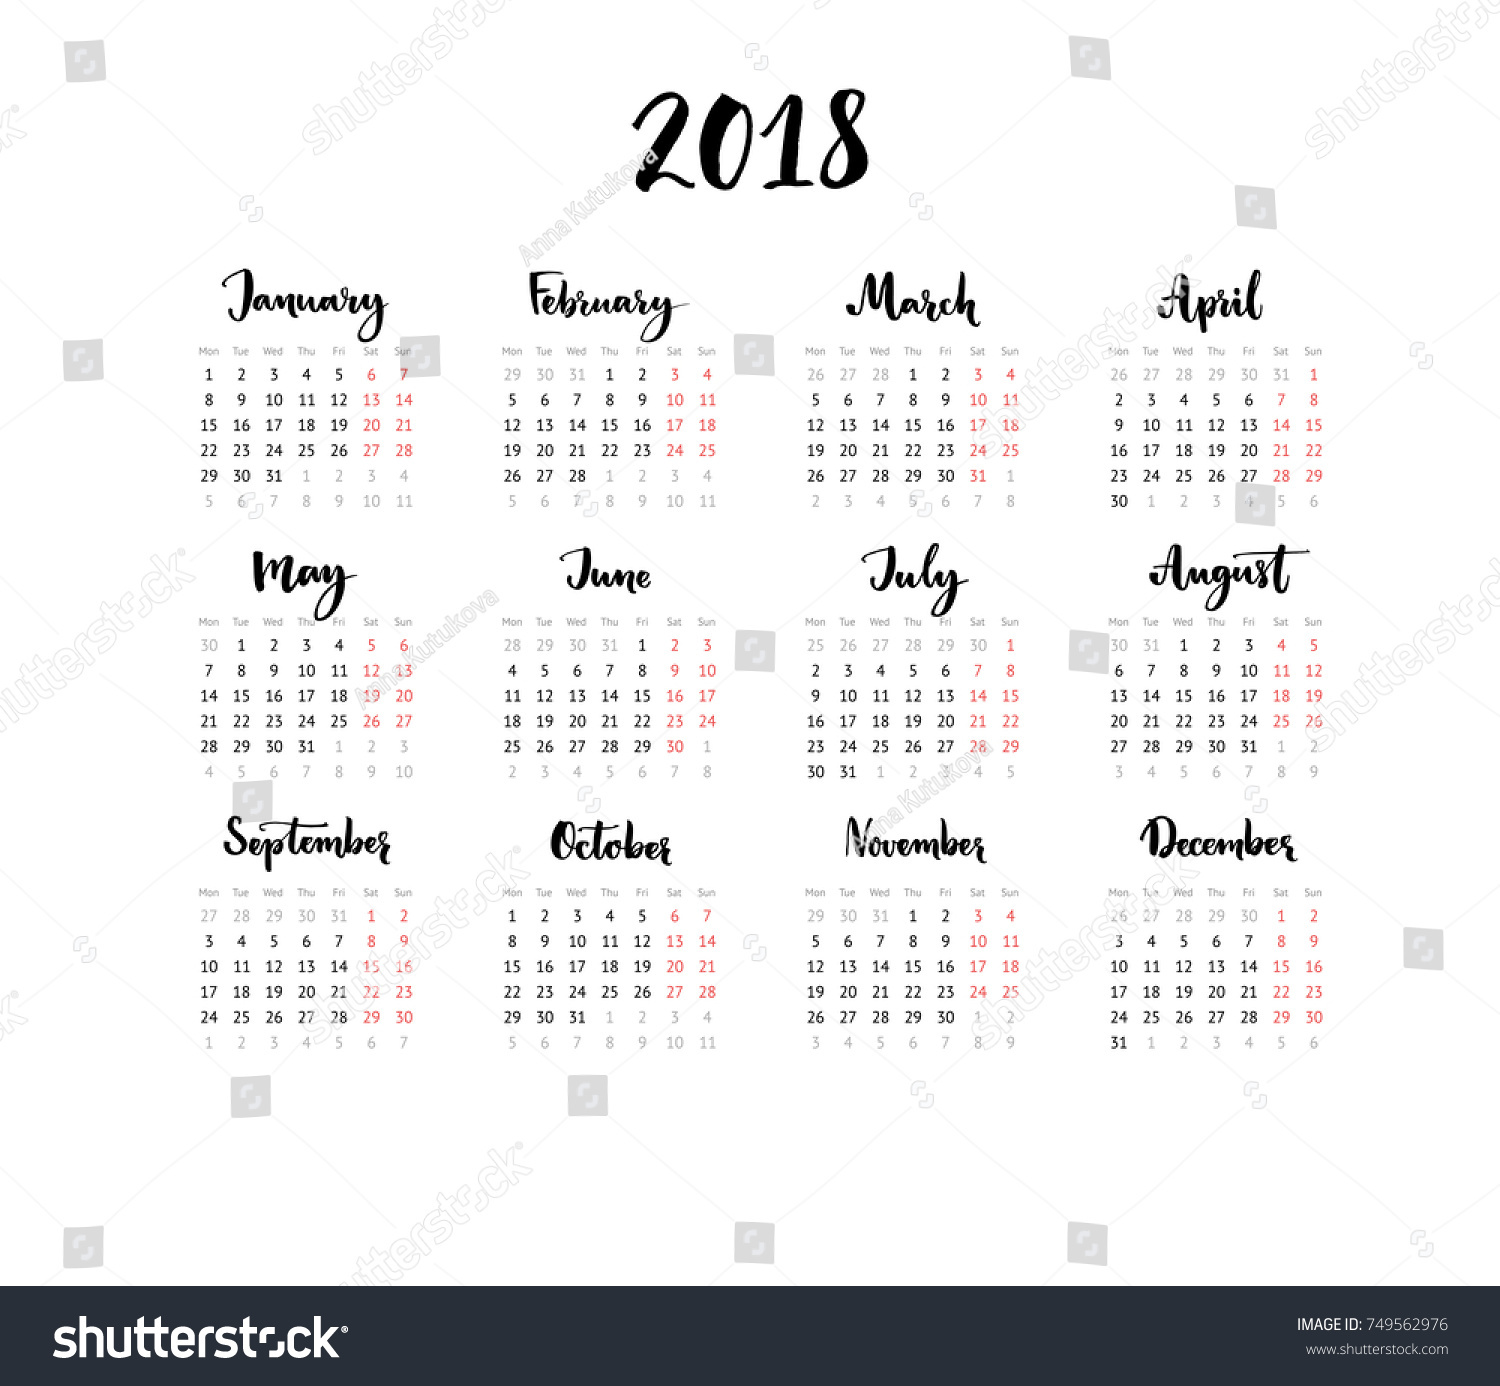 one page calendar 2018 with calligraphy months week starts from monday simple and clean